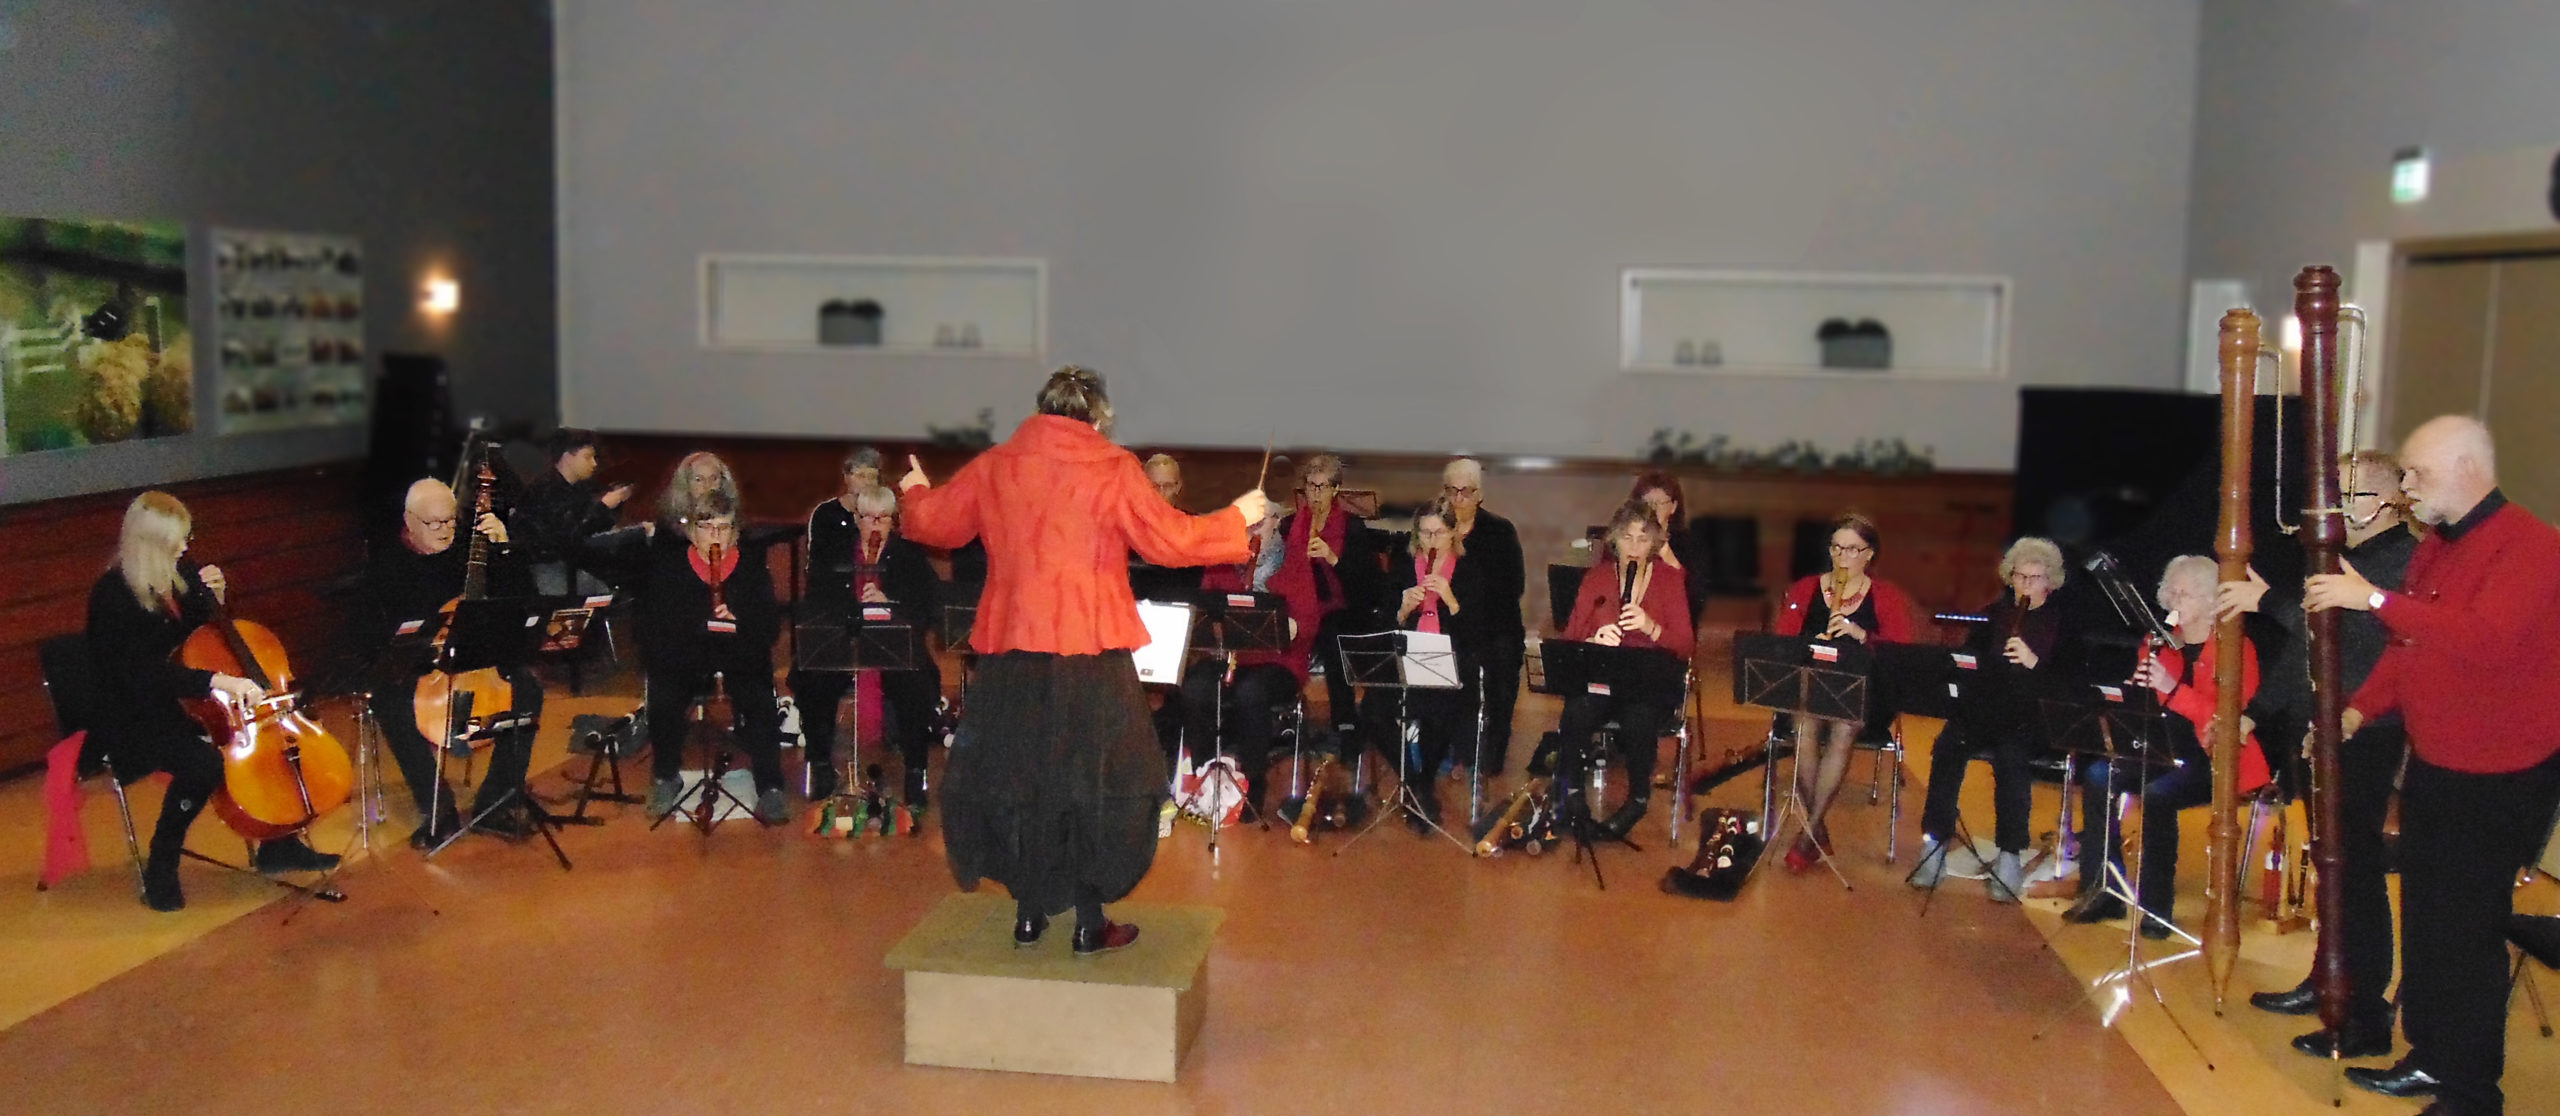 Repetities Rembrandtproject In Volle Gang